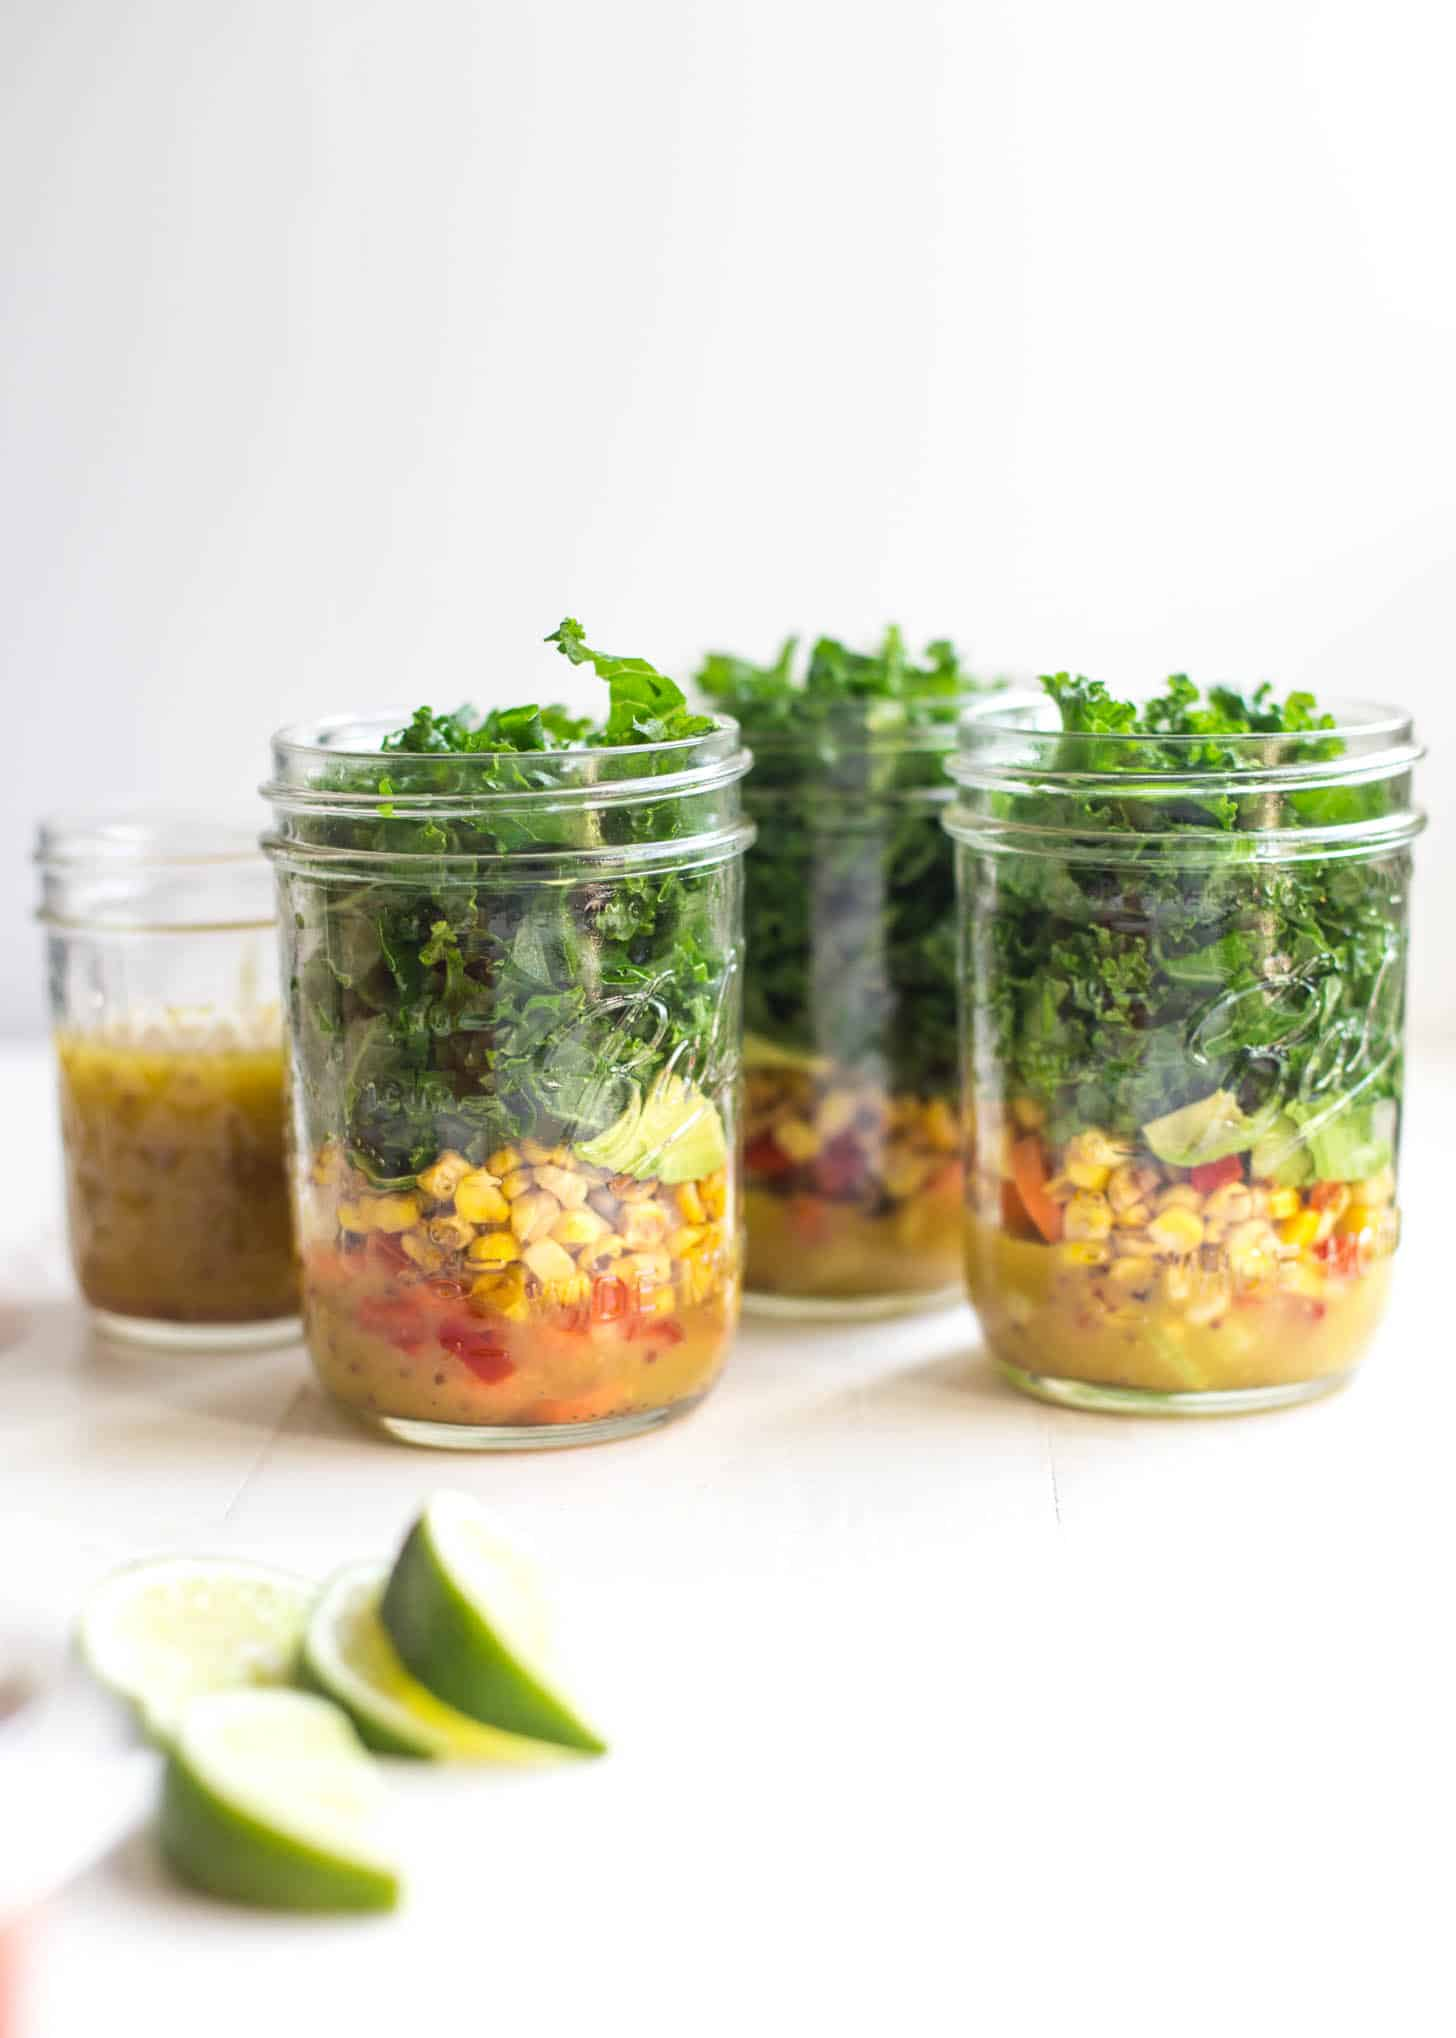 salads prepped in glass jars